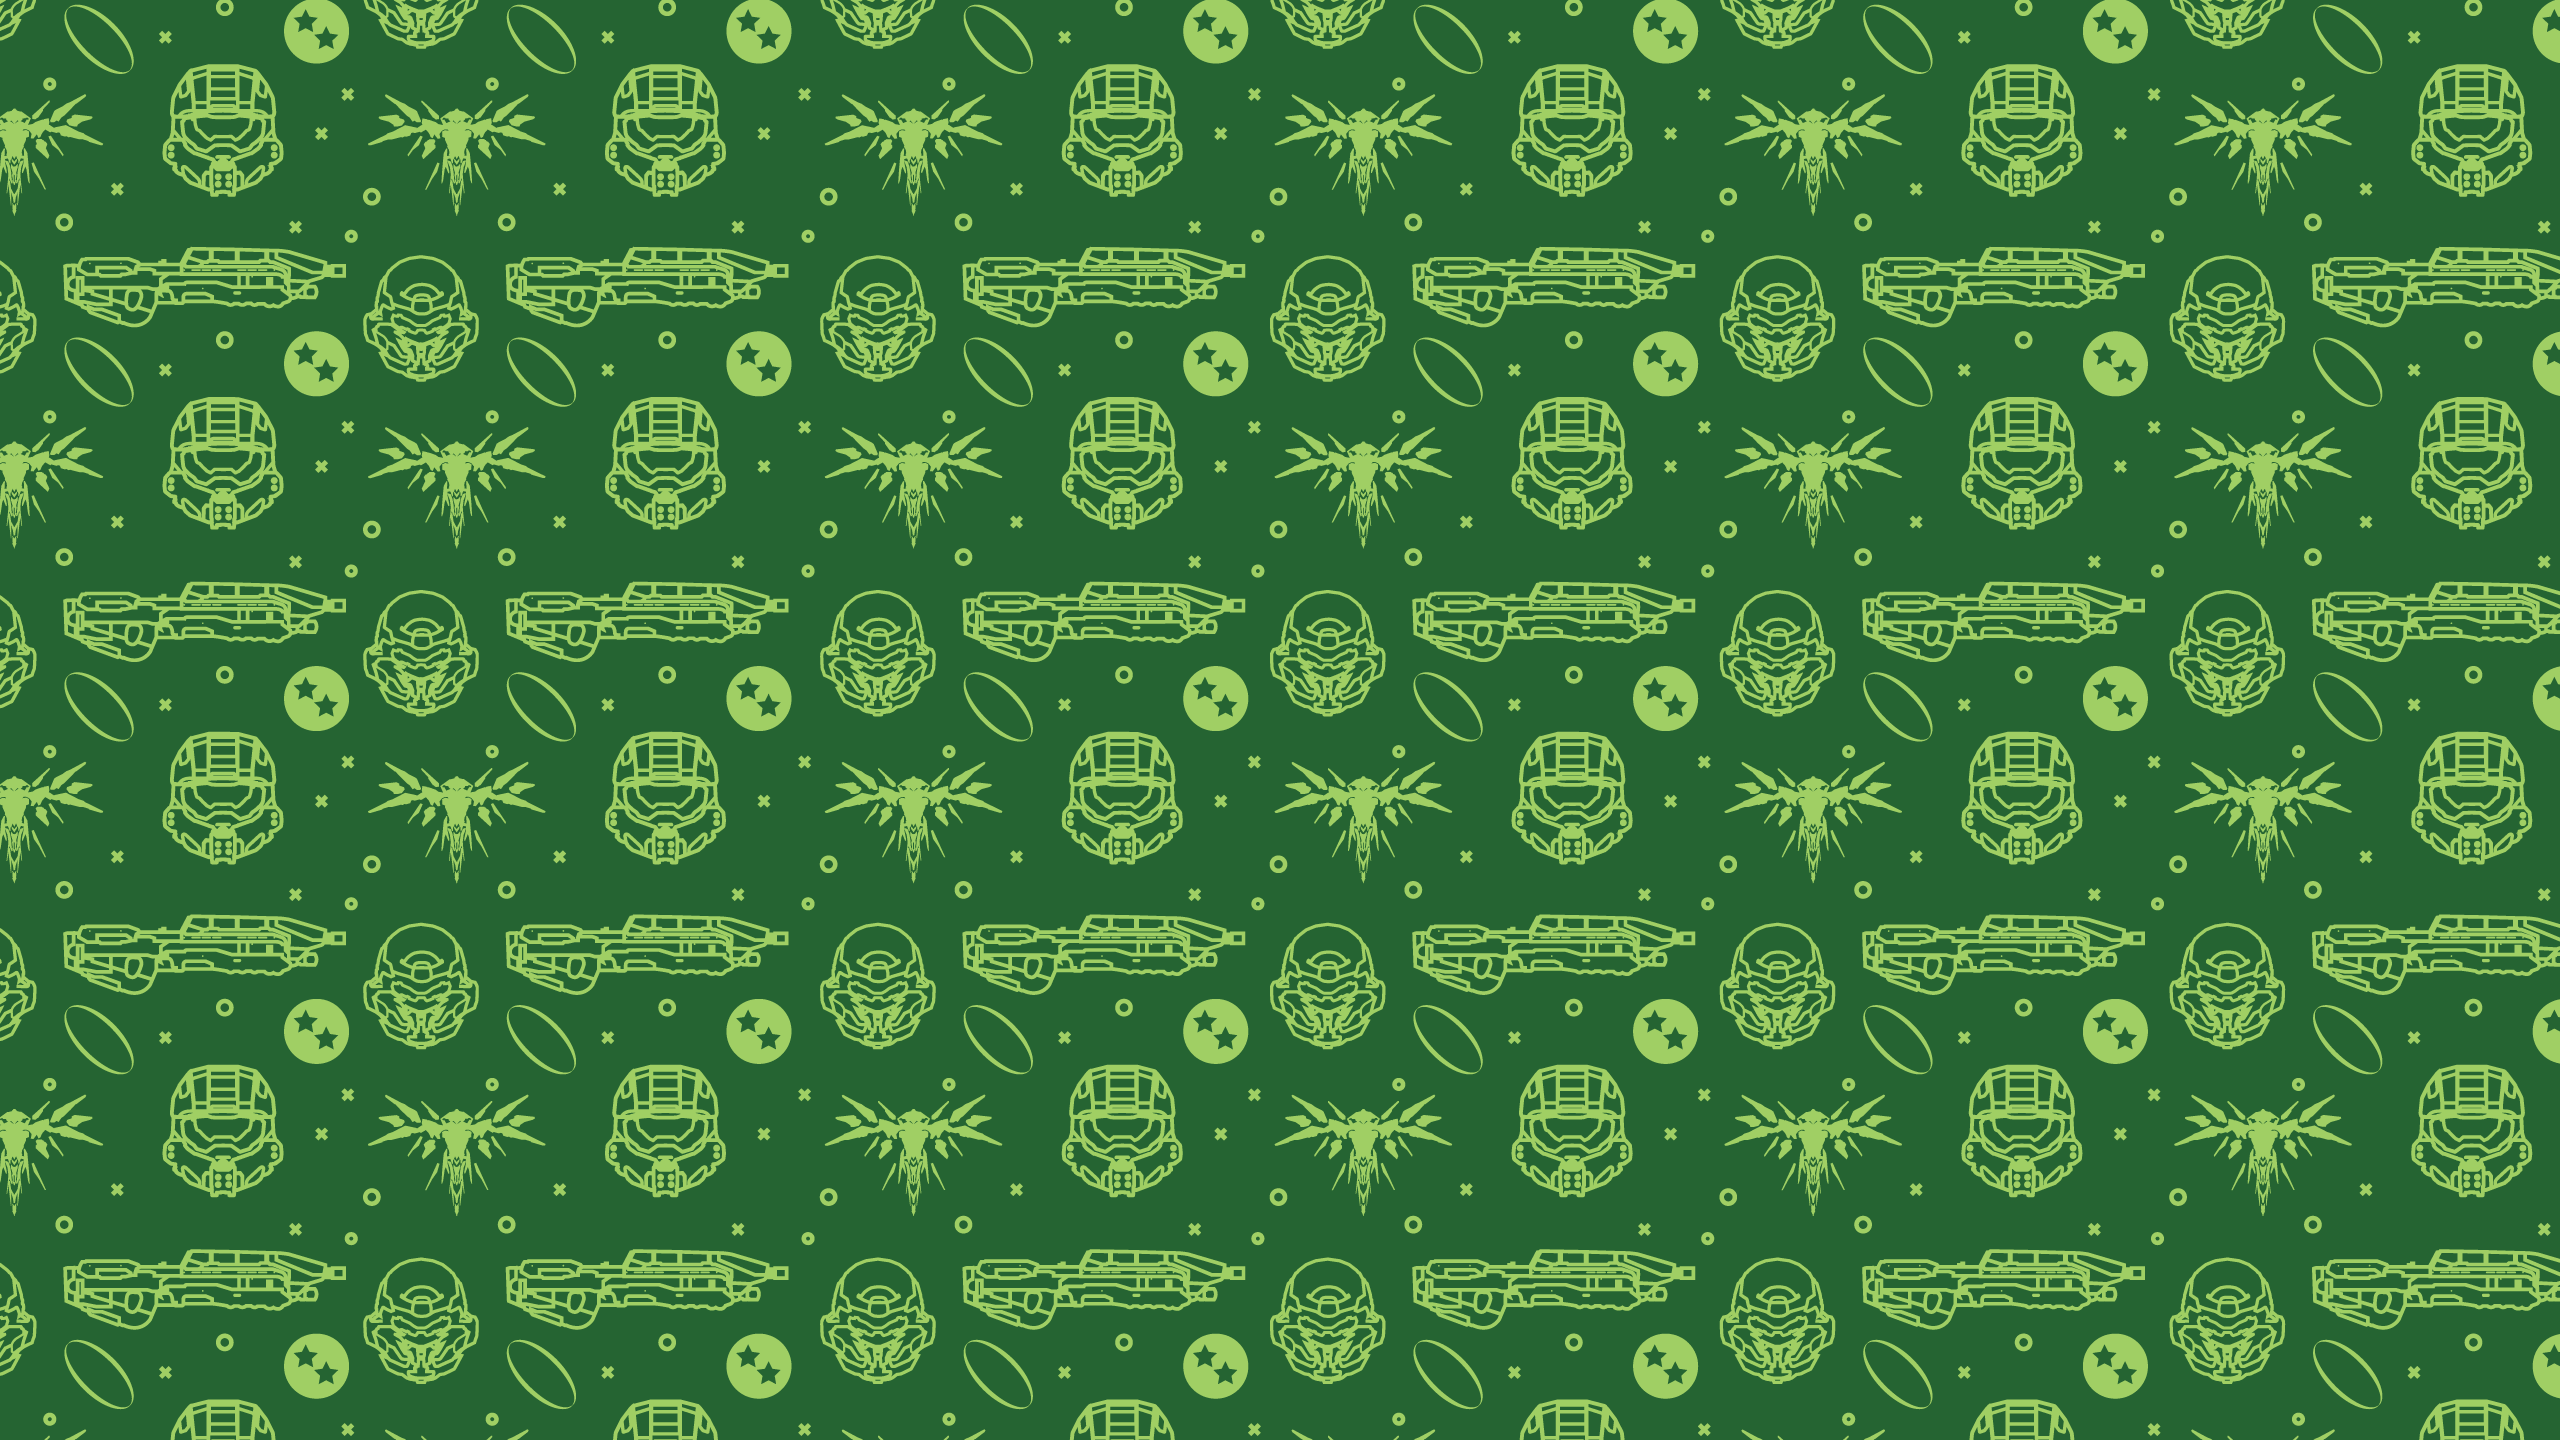 2560x1440 Xbox Christmas wrapping paper on Behance